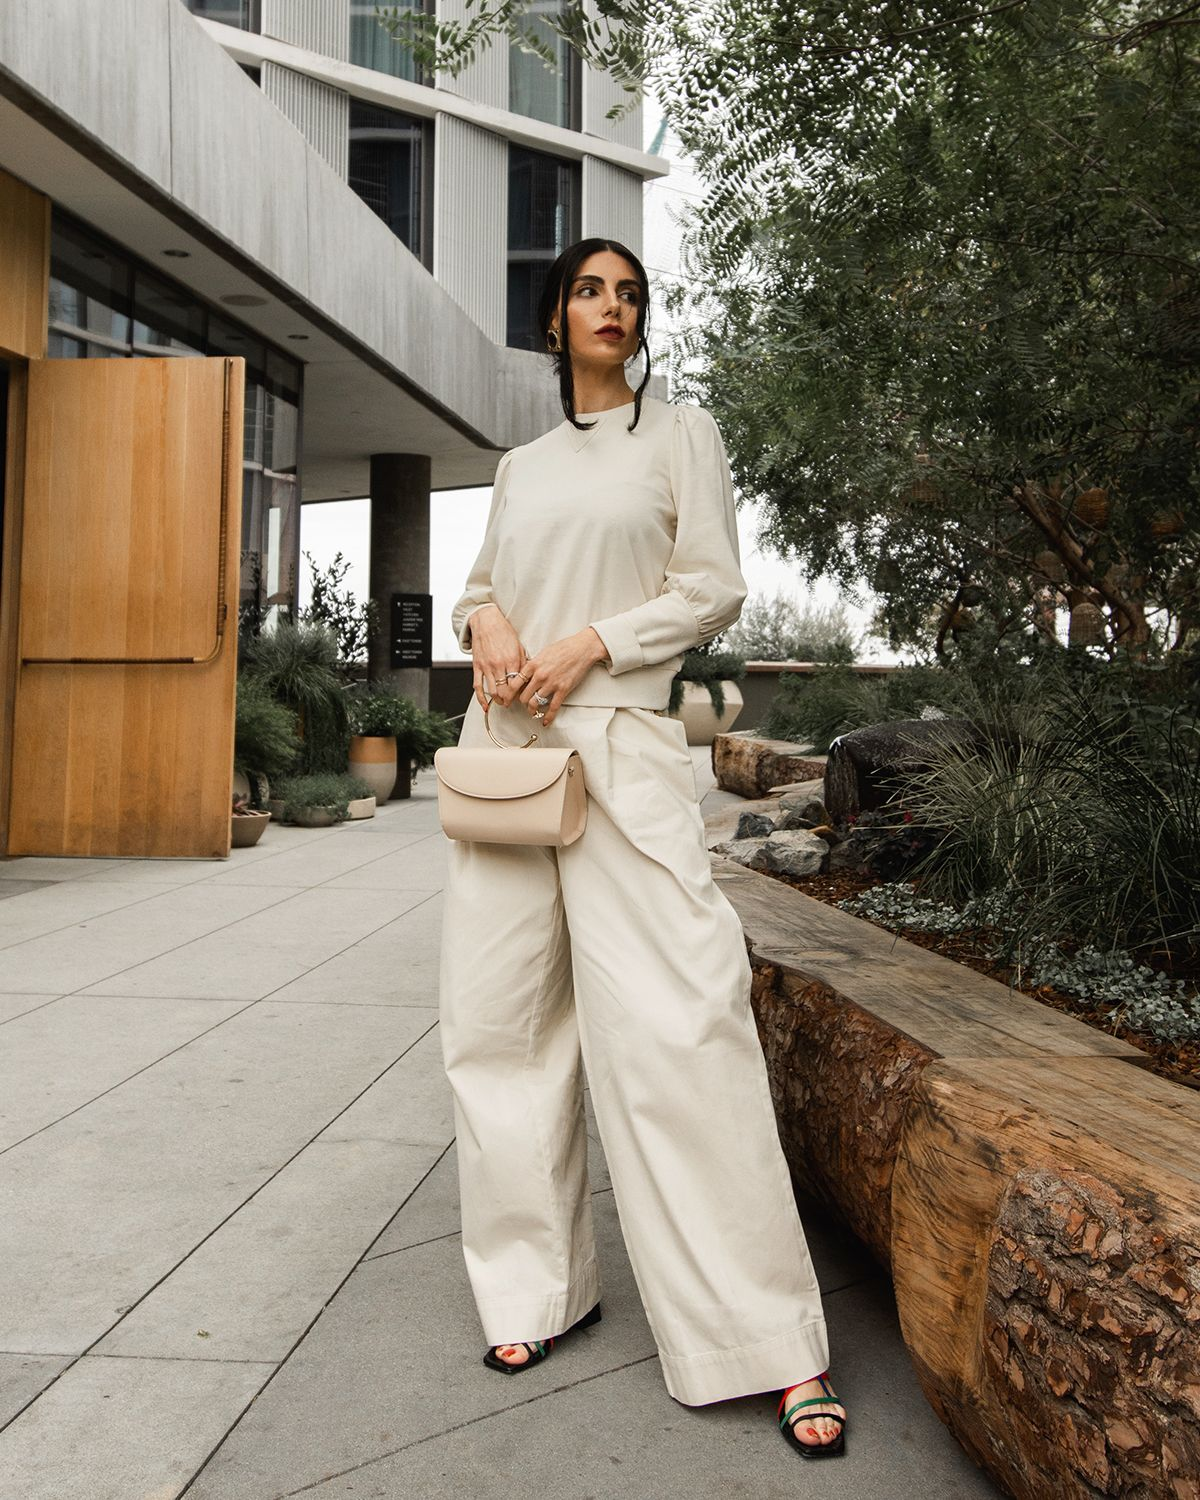 8 Wide-Leg Pant Outfits That Will Make You Want to Ditch Your Skinny Jeans ASAP